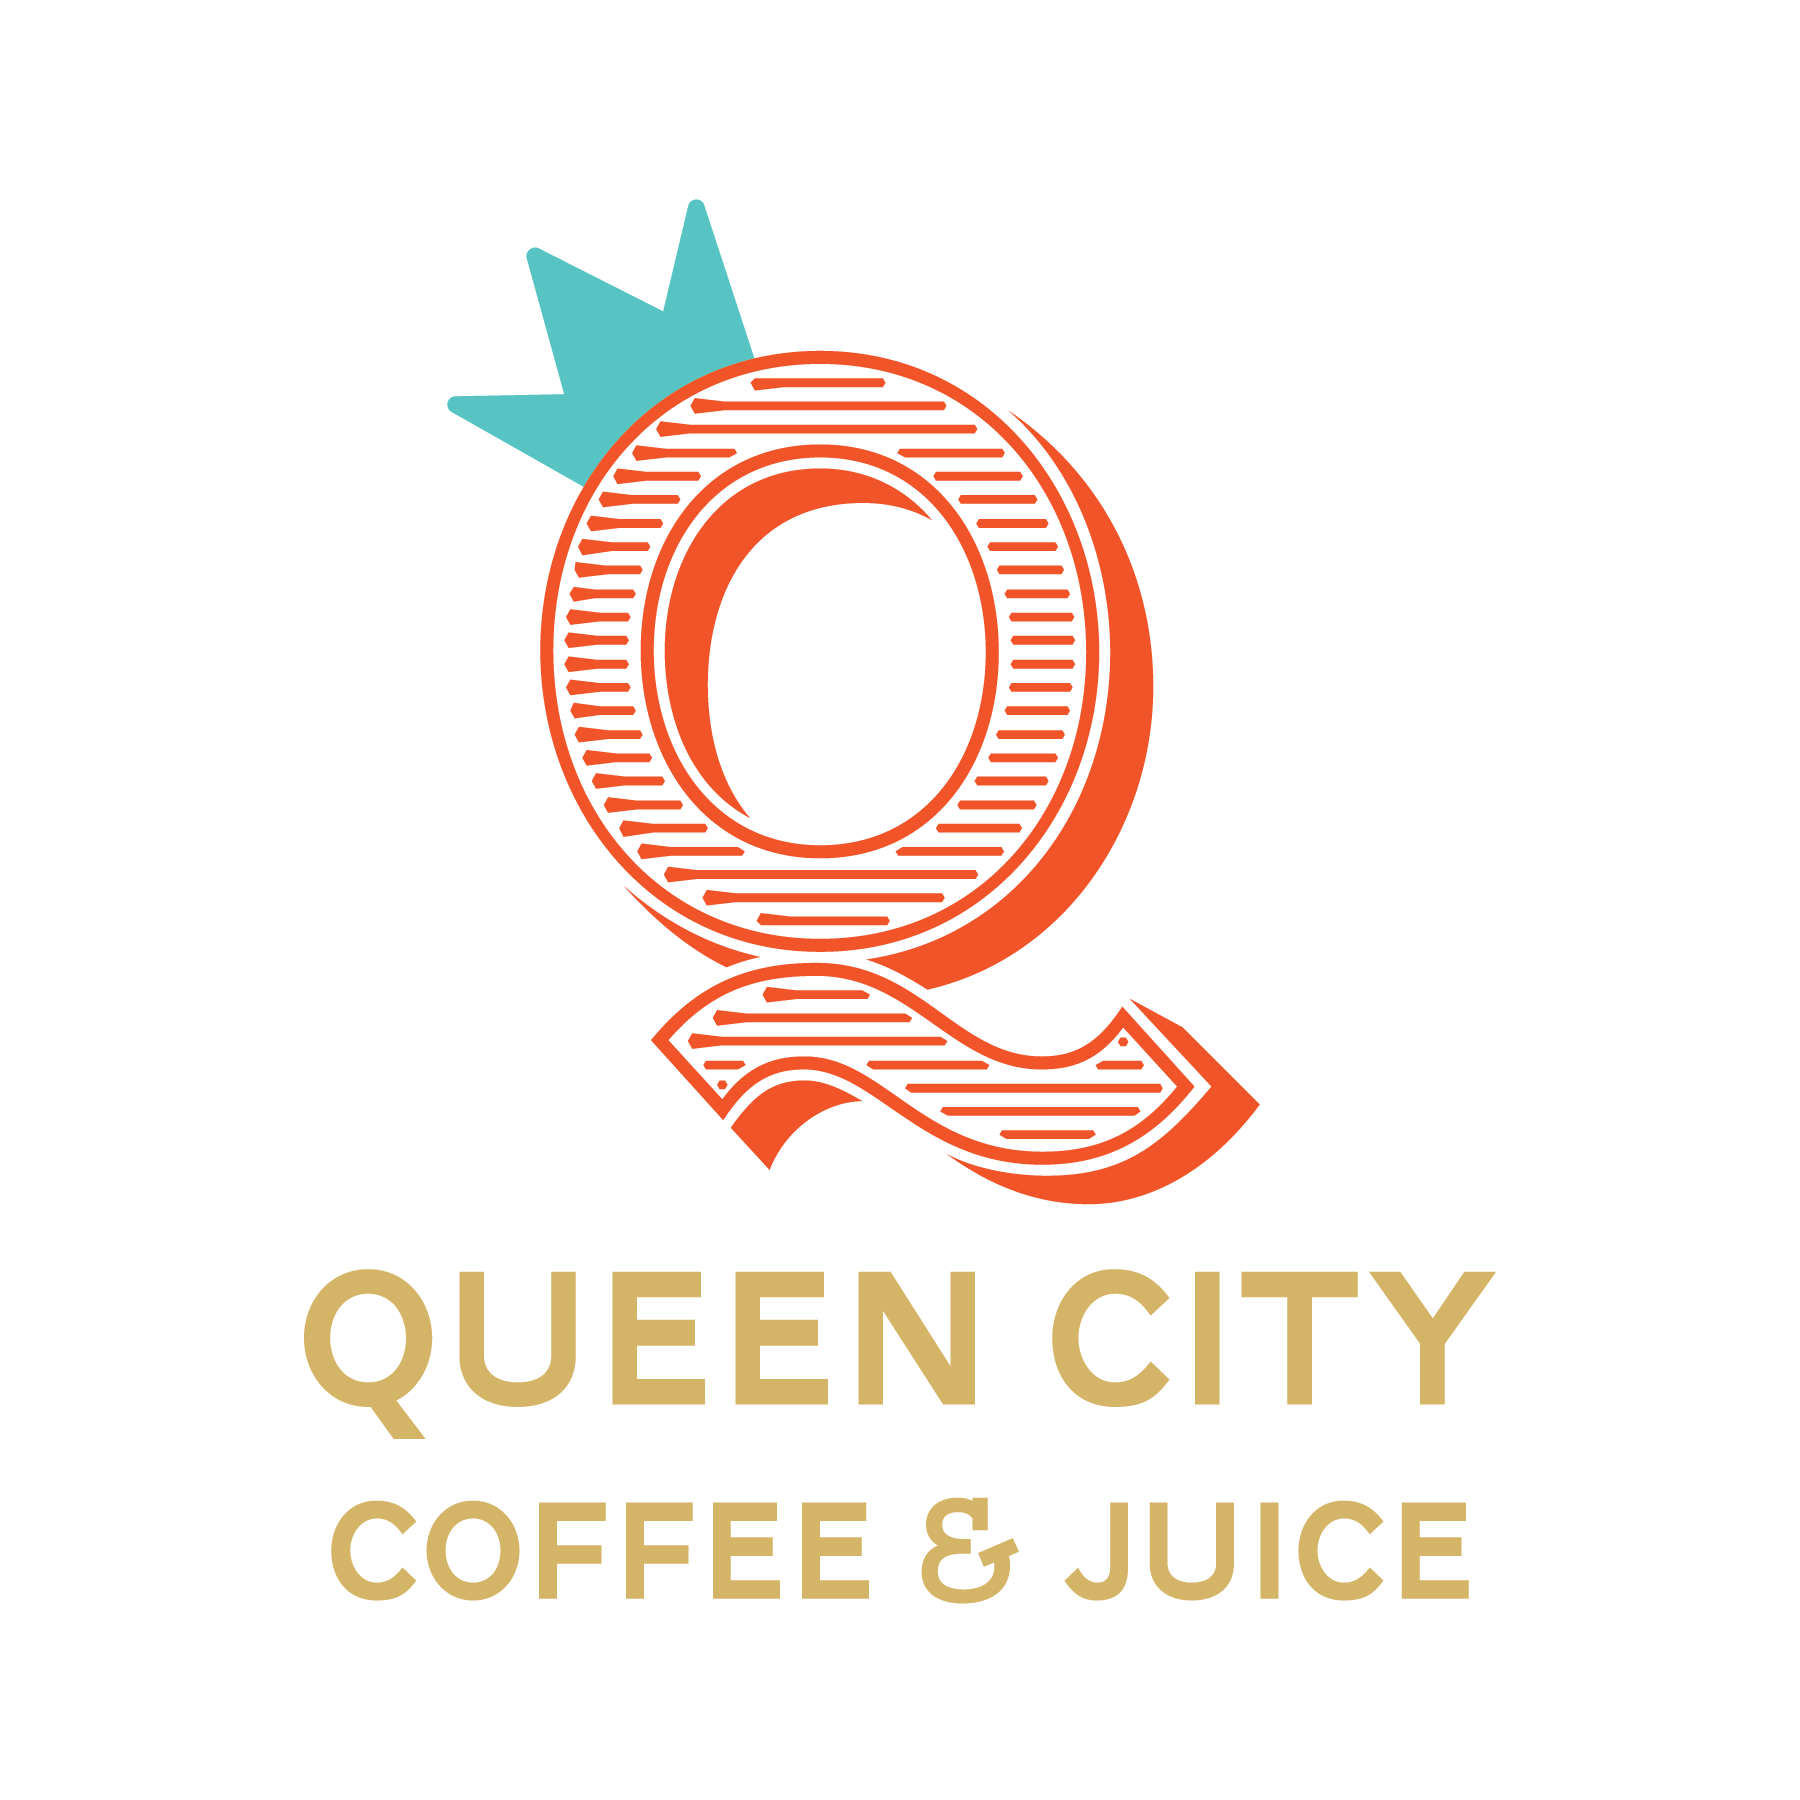 Queen CityCoffee & Juice - 7:30 am – 8 pm | Monday – Friday9 am – 5 pm | Saturday10 am – 5 pm | SundayPlus event hours.